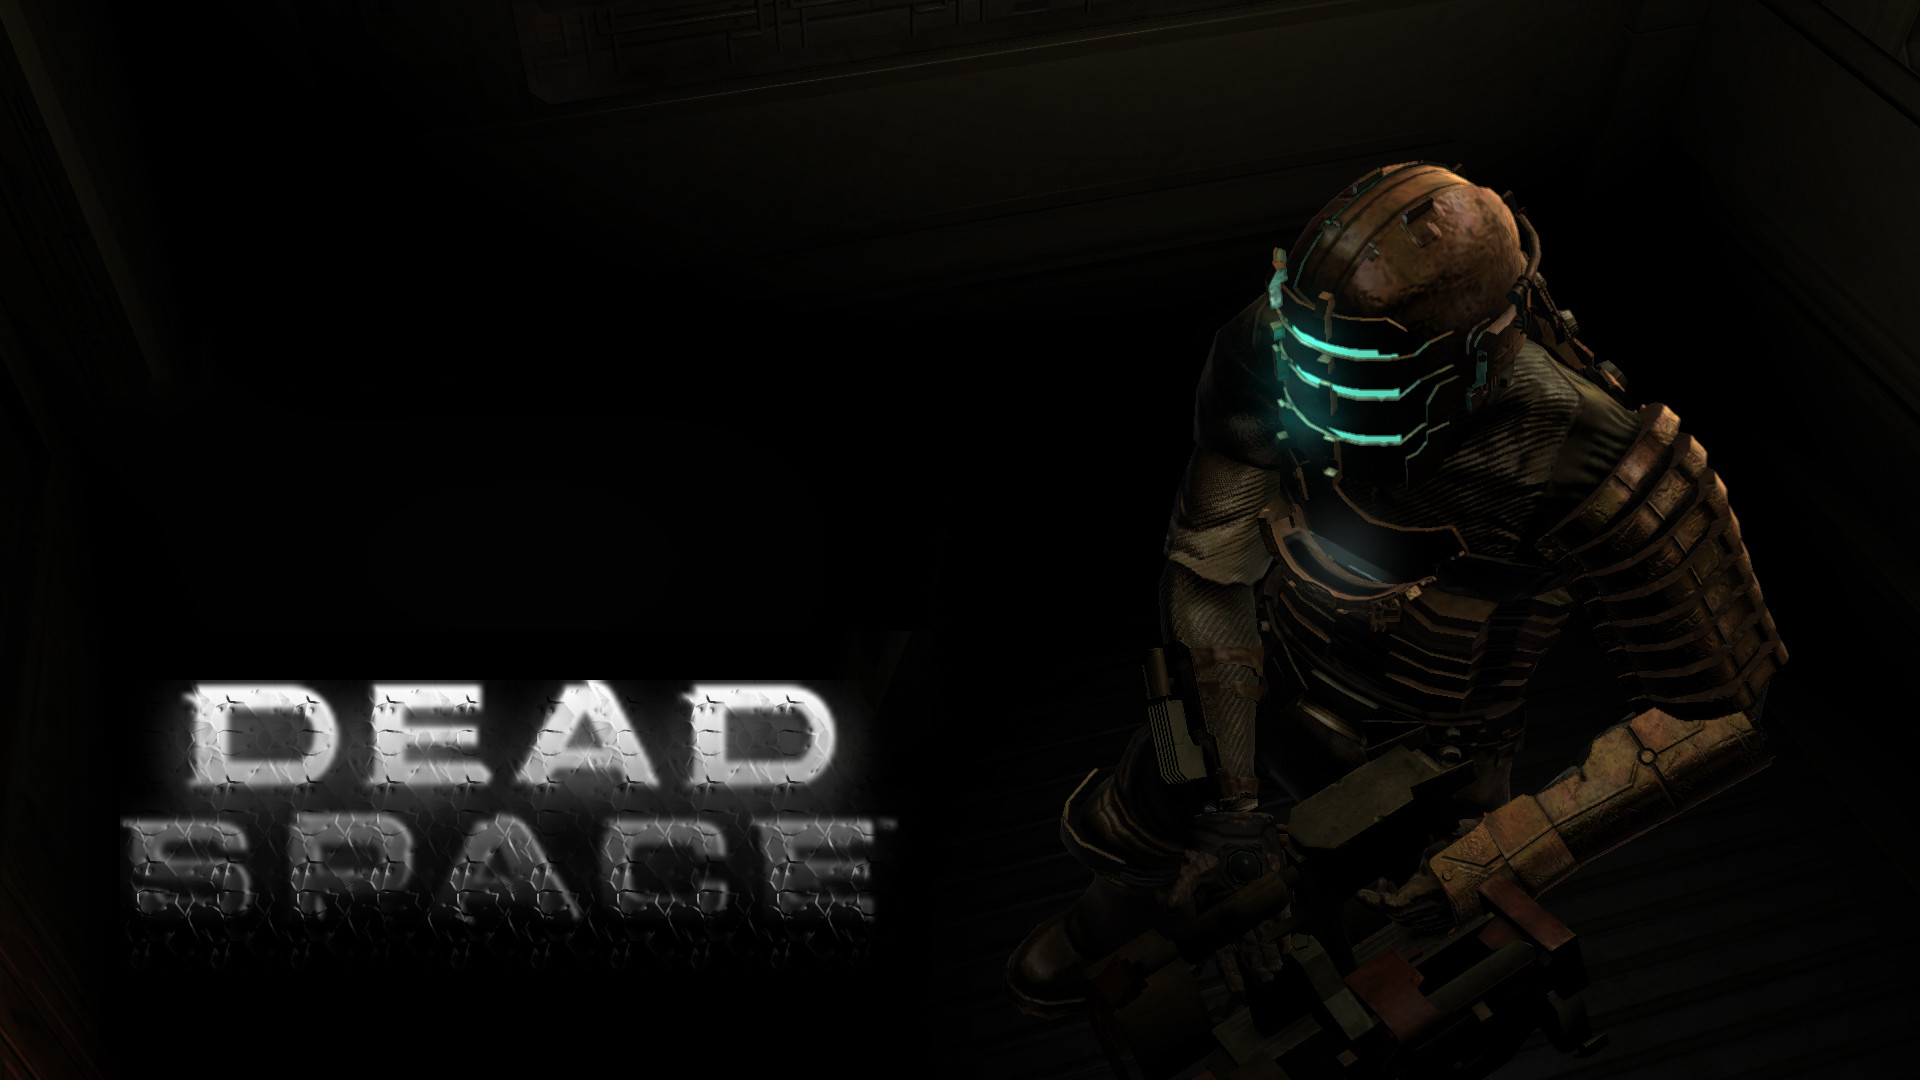 1920x1080 High Definition Dead Space Wallpaper - HD Widescreen Images